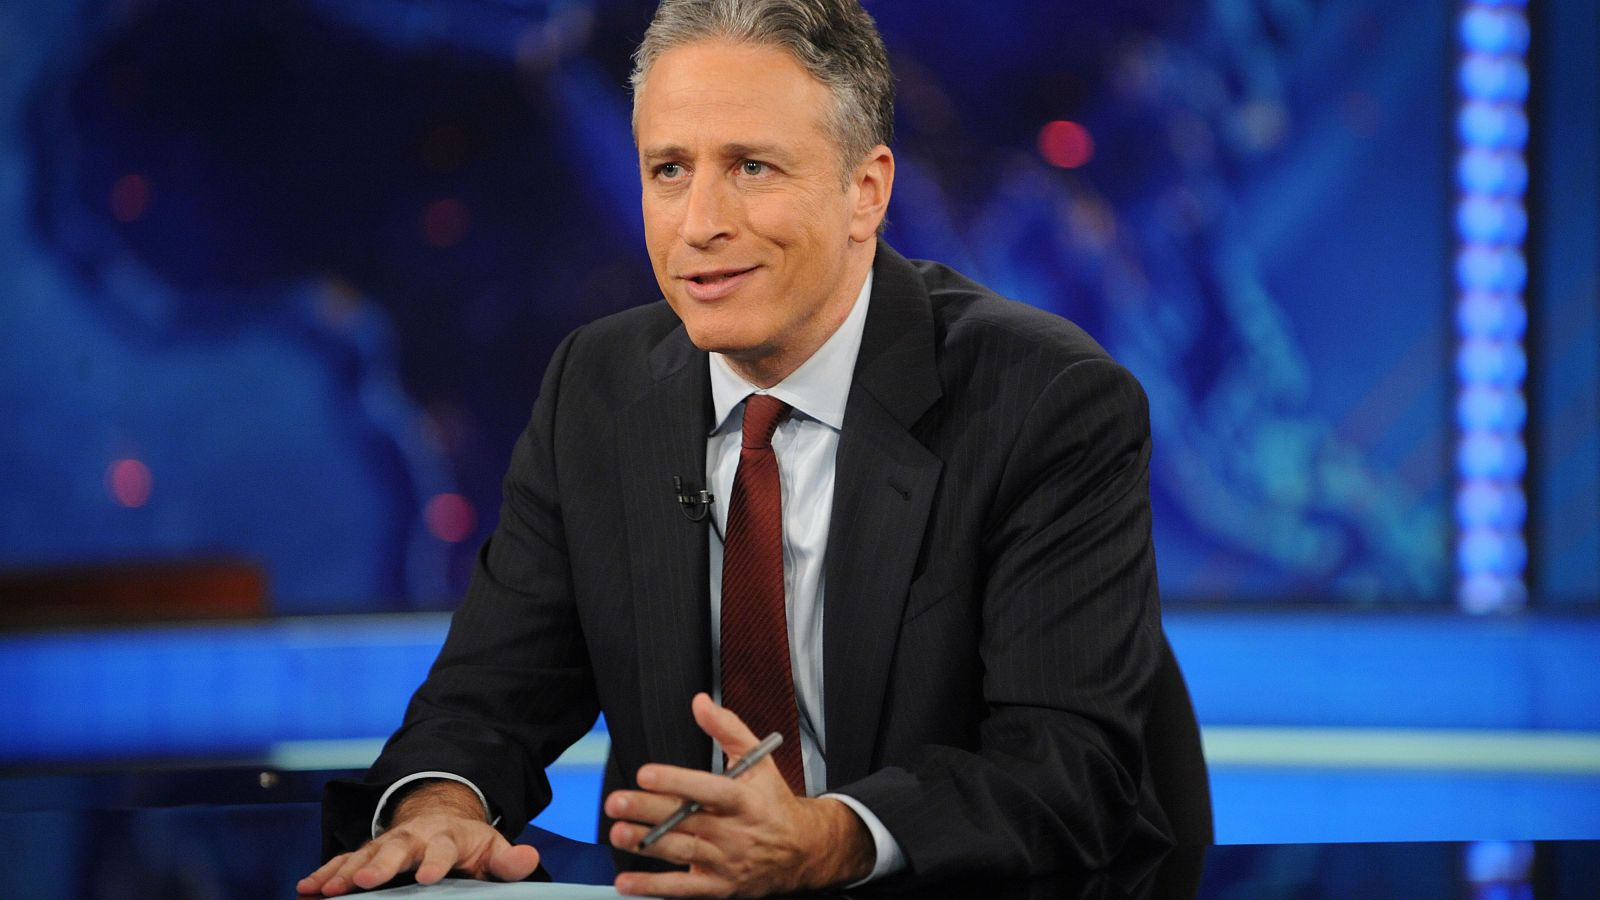 Jon Stewart Net Worth